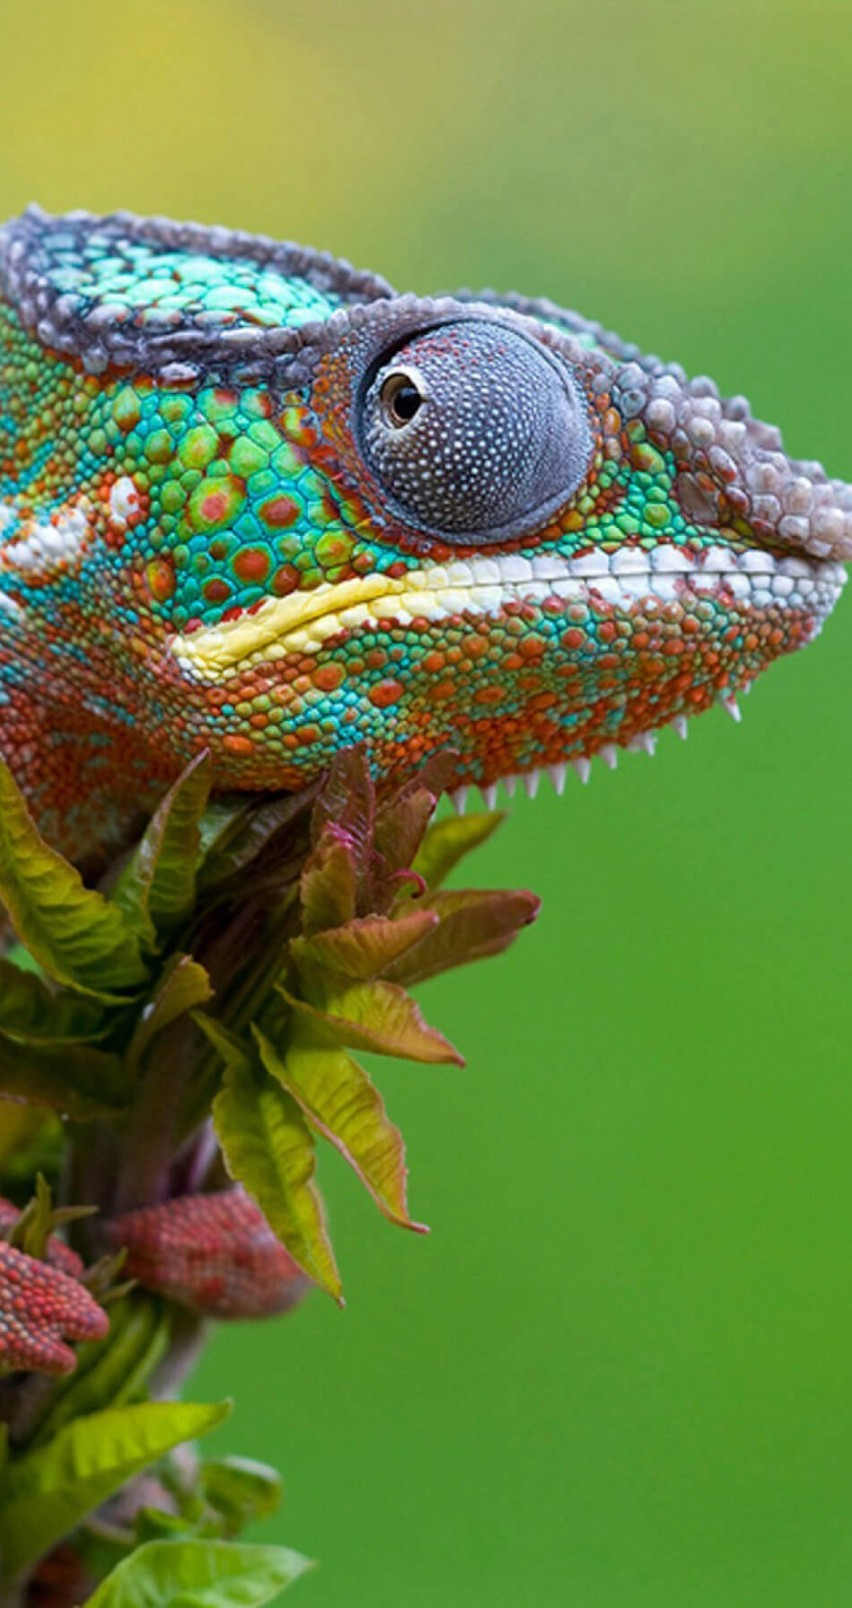 Colorful Panther Chameleon Wallpaper for Apple iPhone 6 / 6s